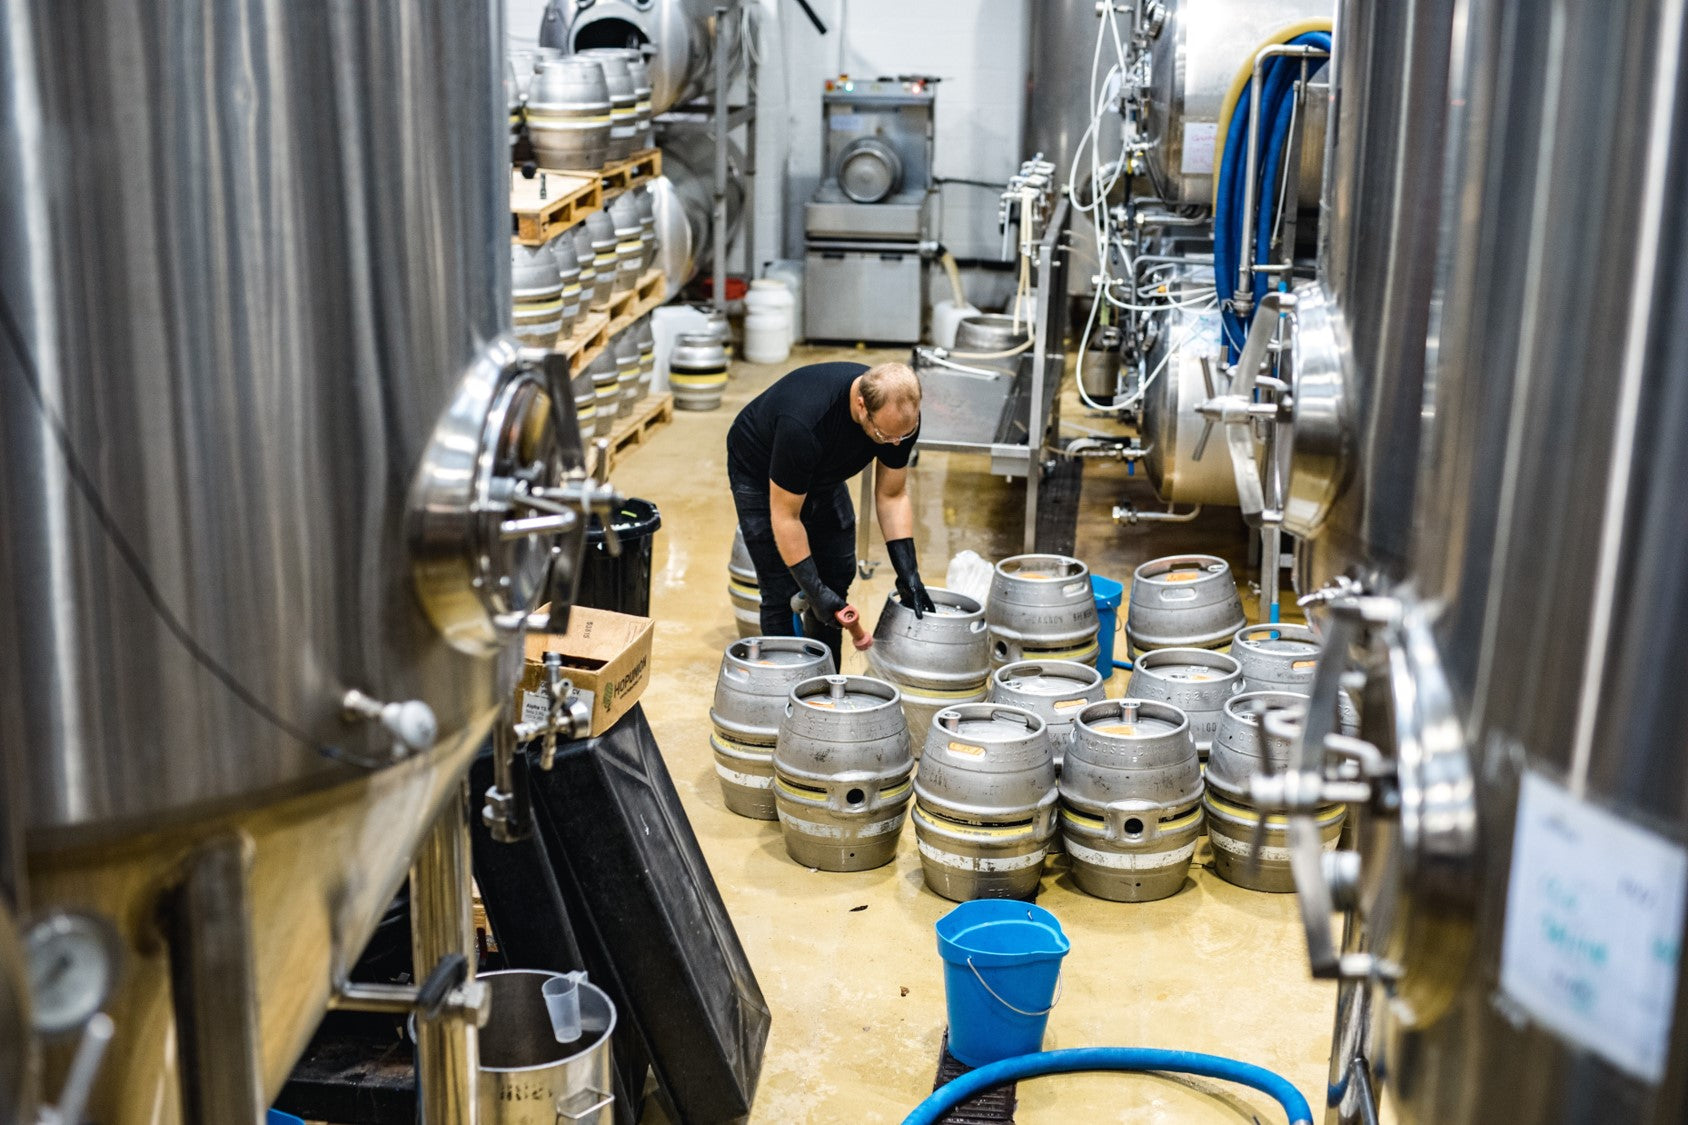 Loose Cannon Brewery in action